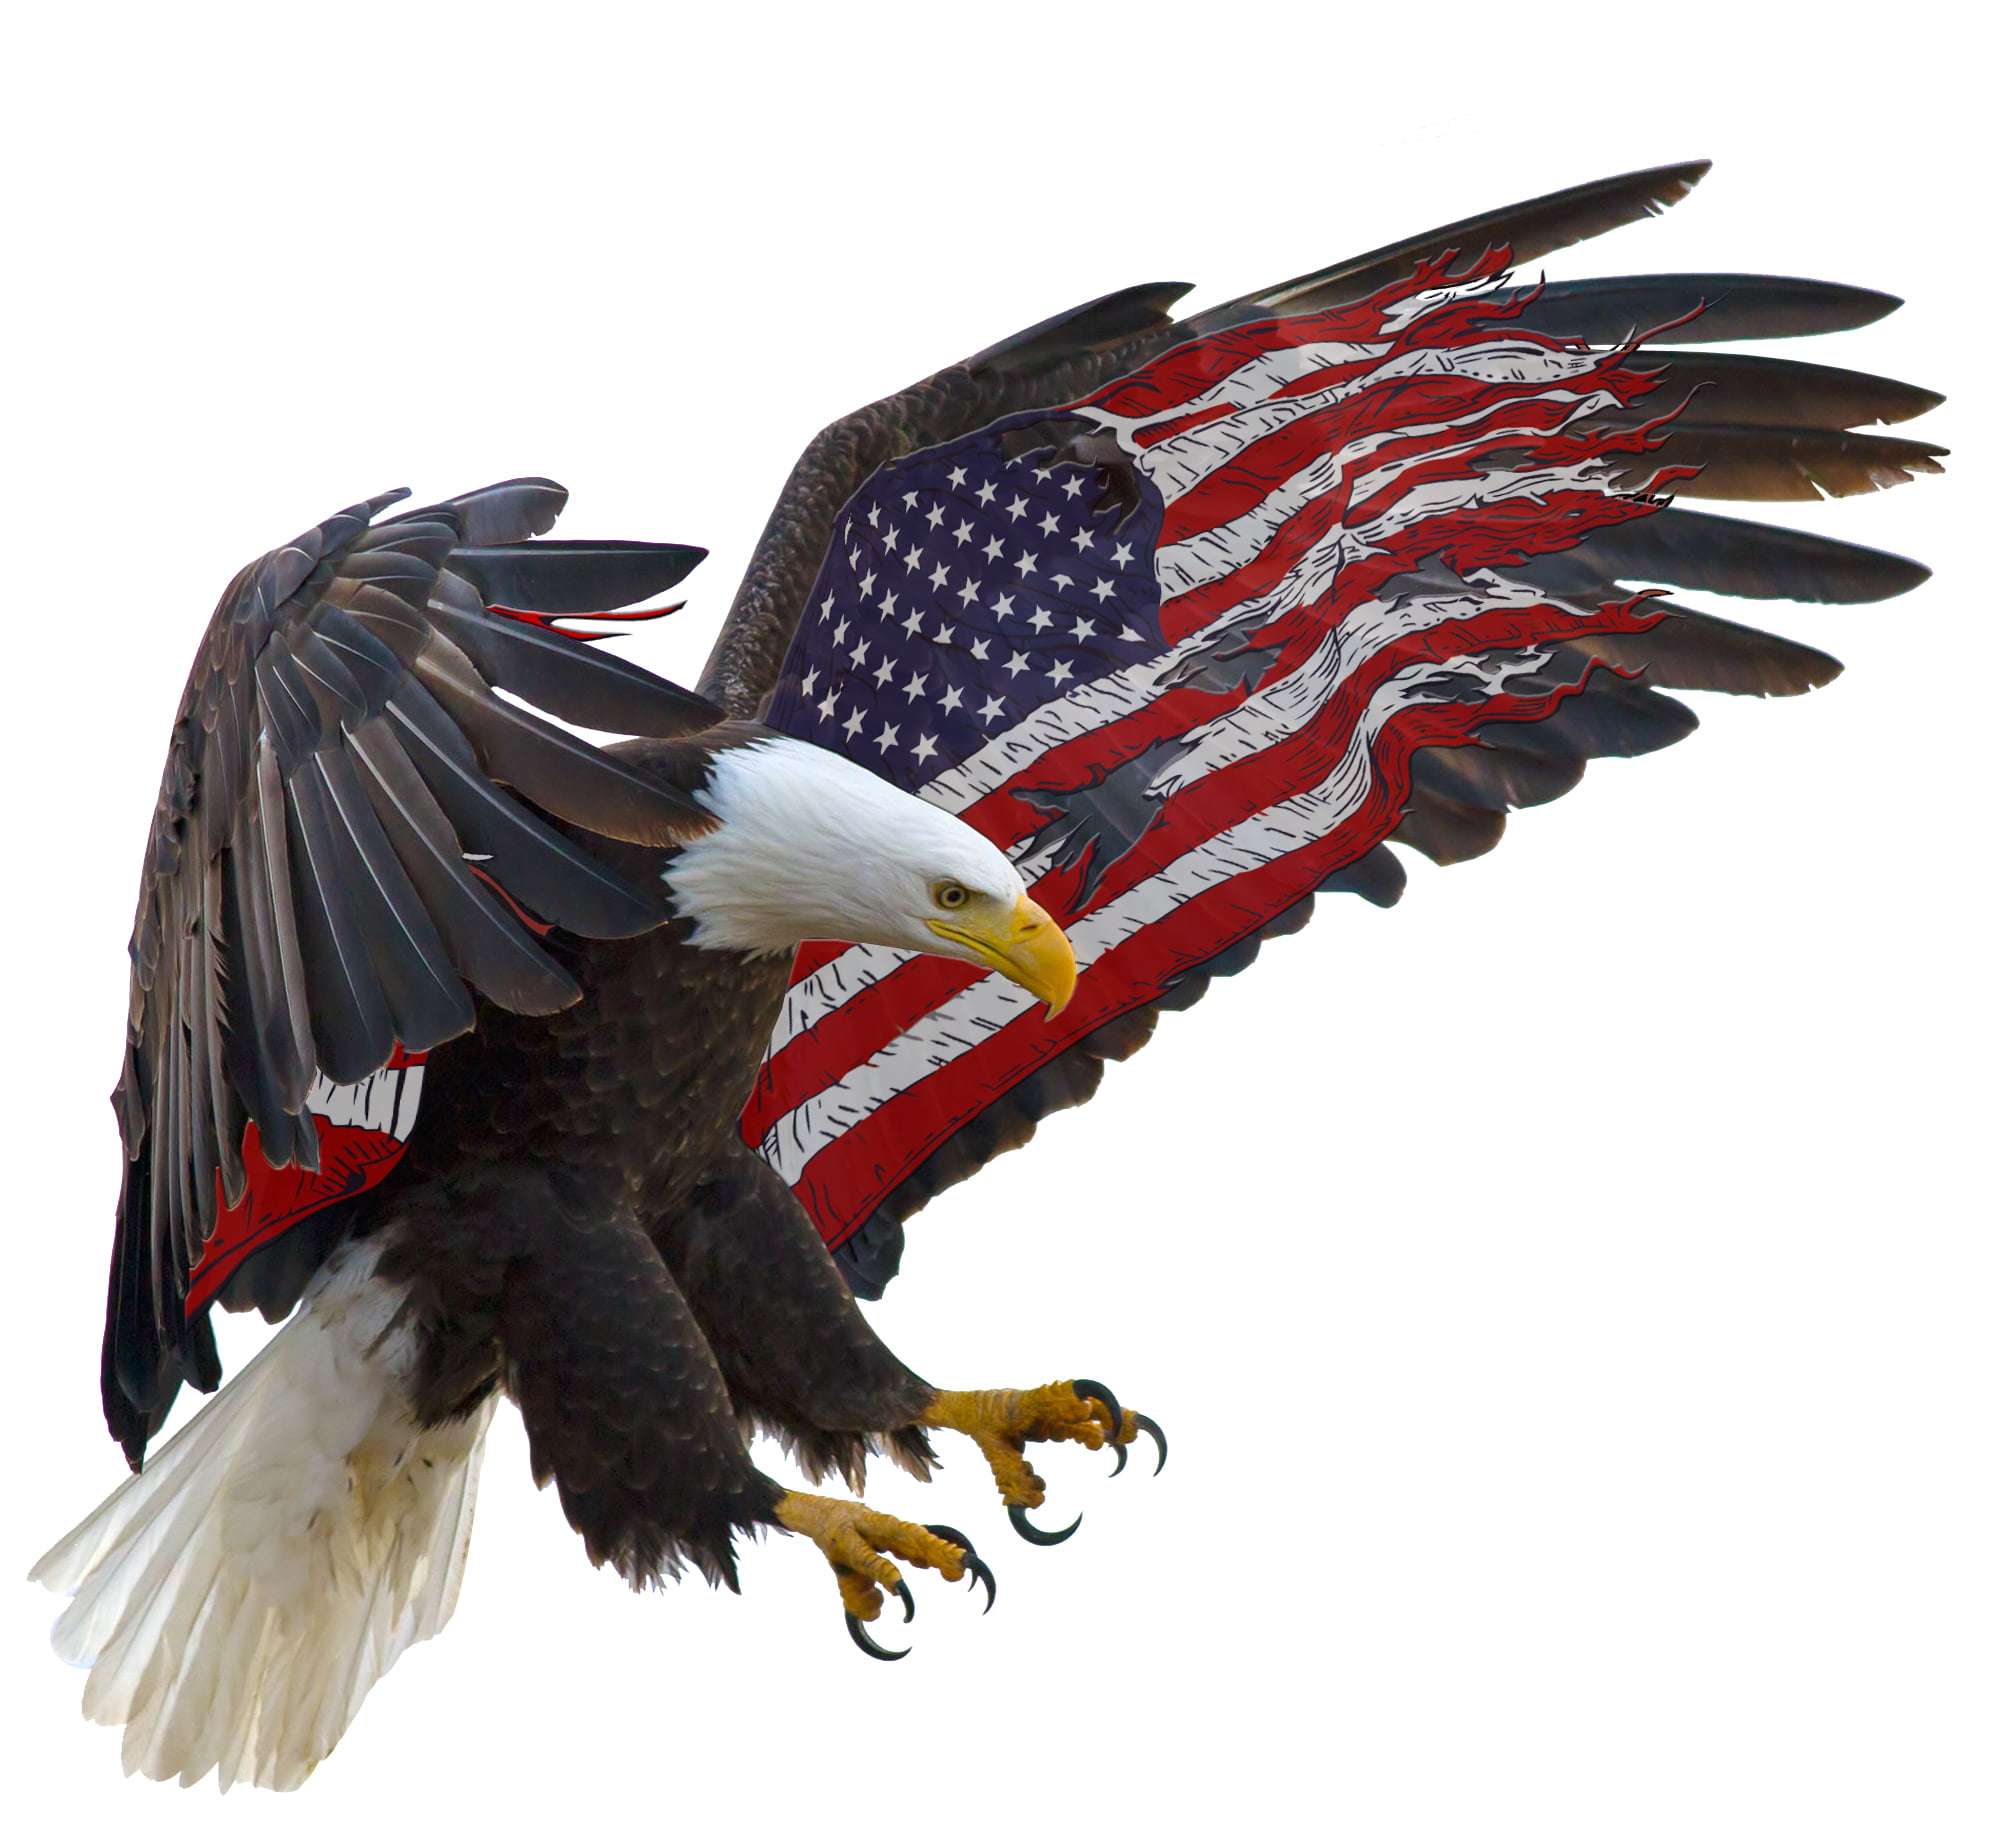 "American Eagle American Flag 5"" Decal Free Shipping in the United States. by NOSTALGIA DECALS"